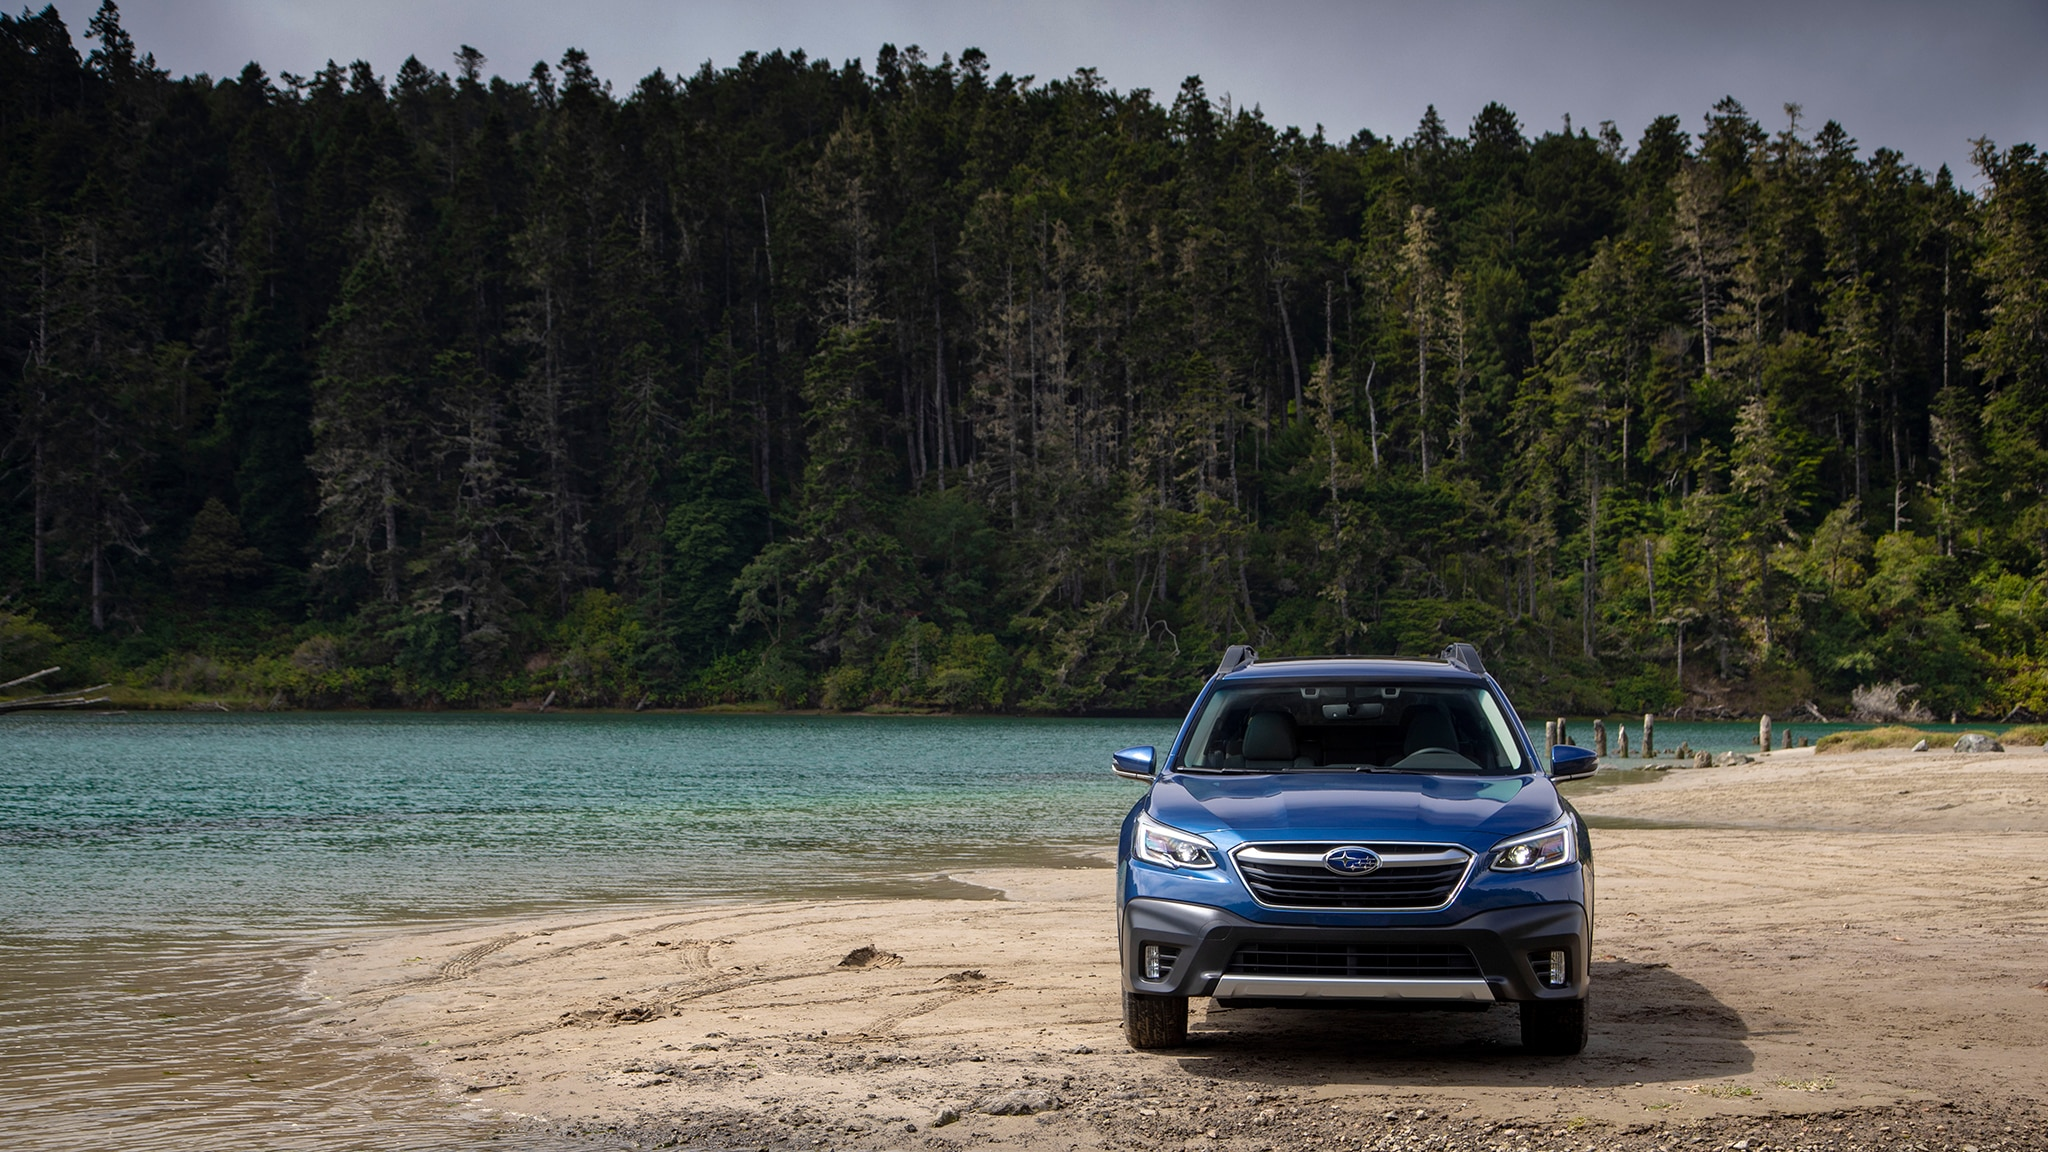 2020 Subaru Outback Redesign And Release Date >> 2020 Subaru Outback First Drive Review All New Even Better